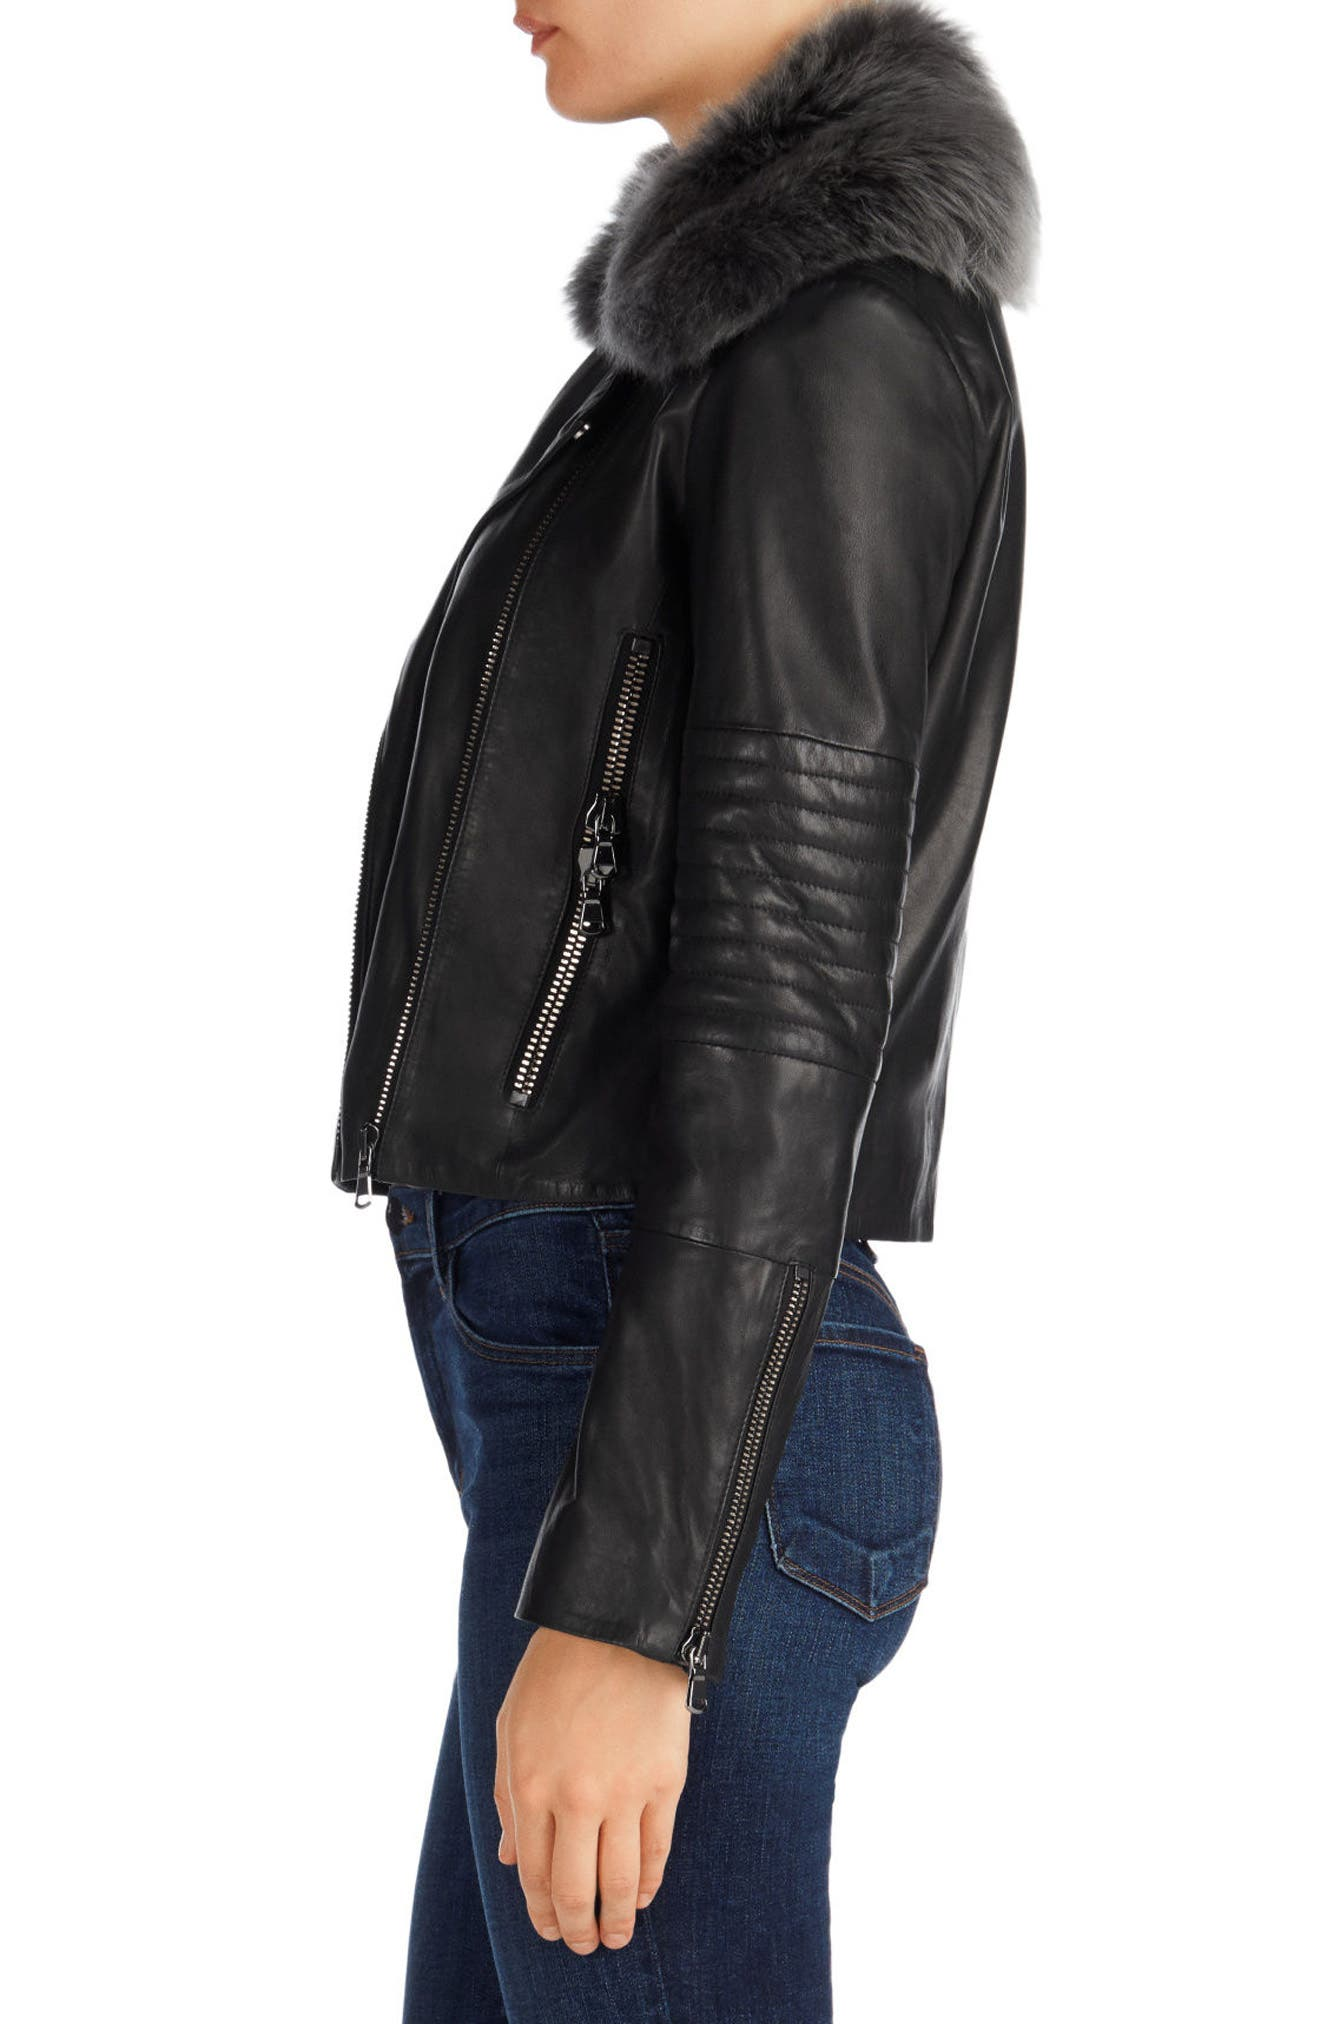 Aiah Leather Moto Jacket with Detachable Lamb Shearling Collar,                             Alternate thumbnail 3, color,                             001